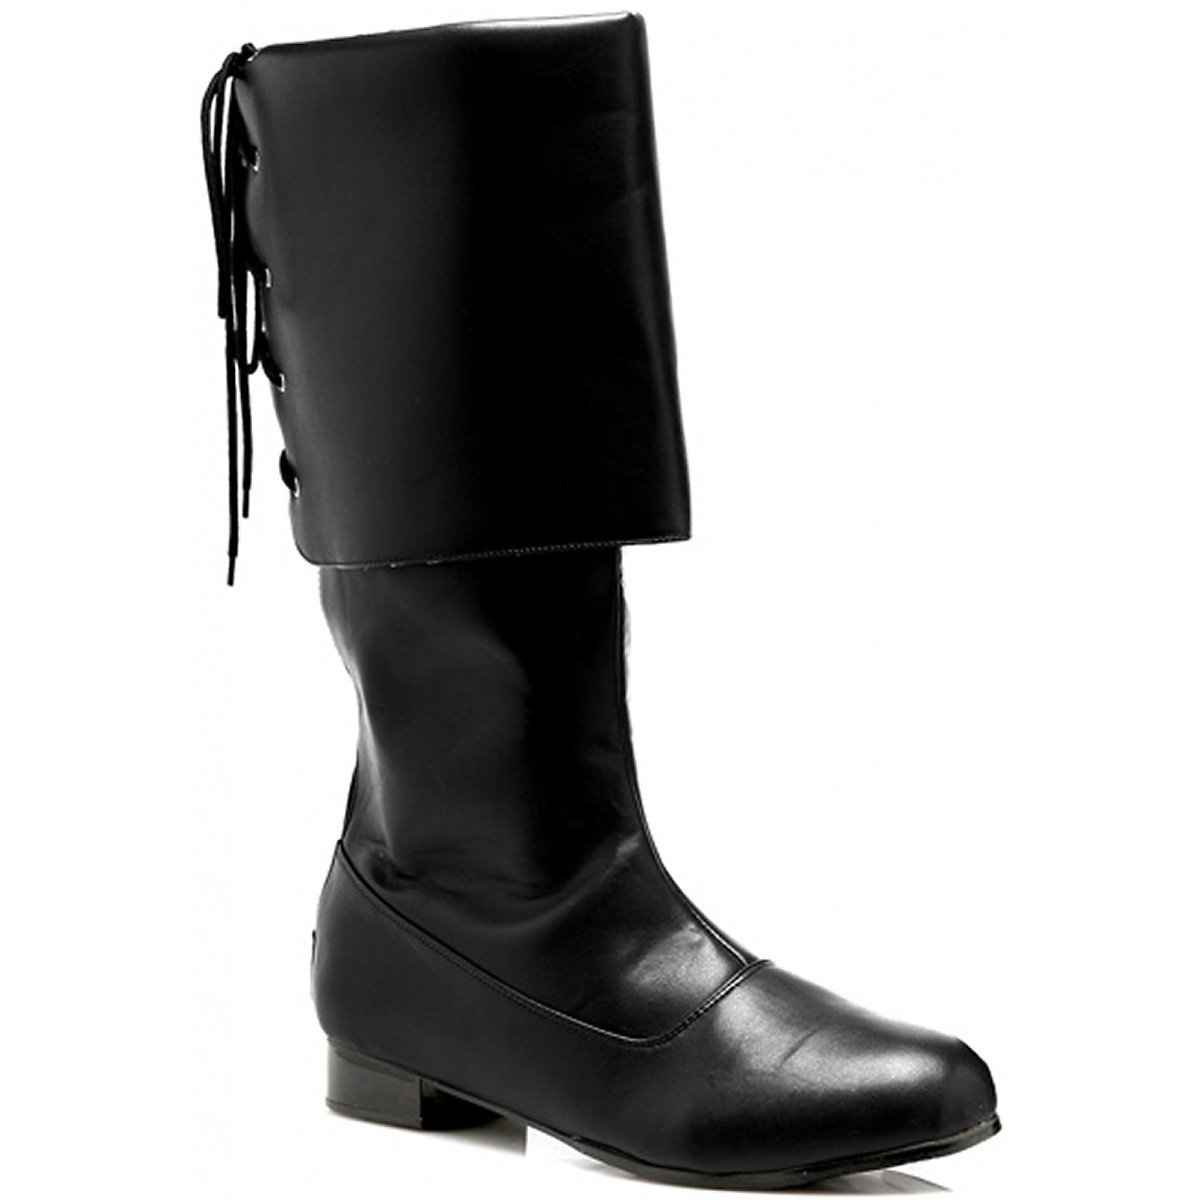 Ellie Shoes Adult Buccaneer Boots